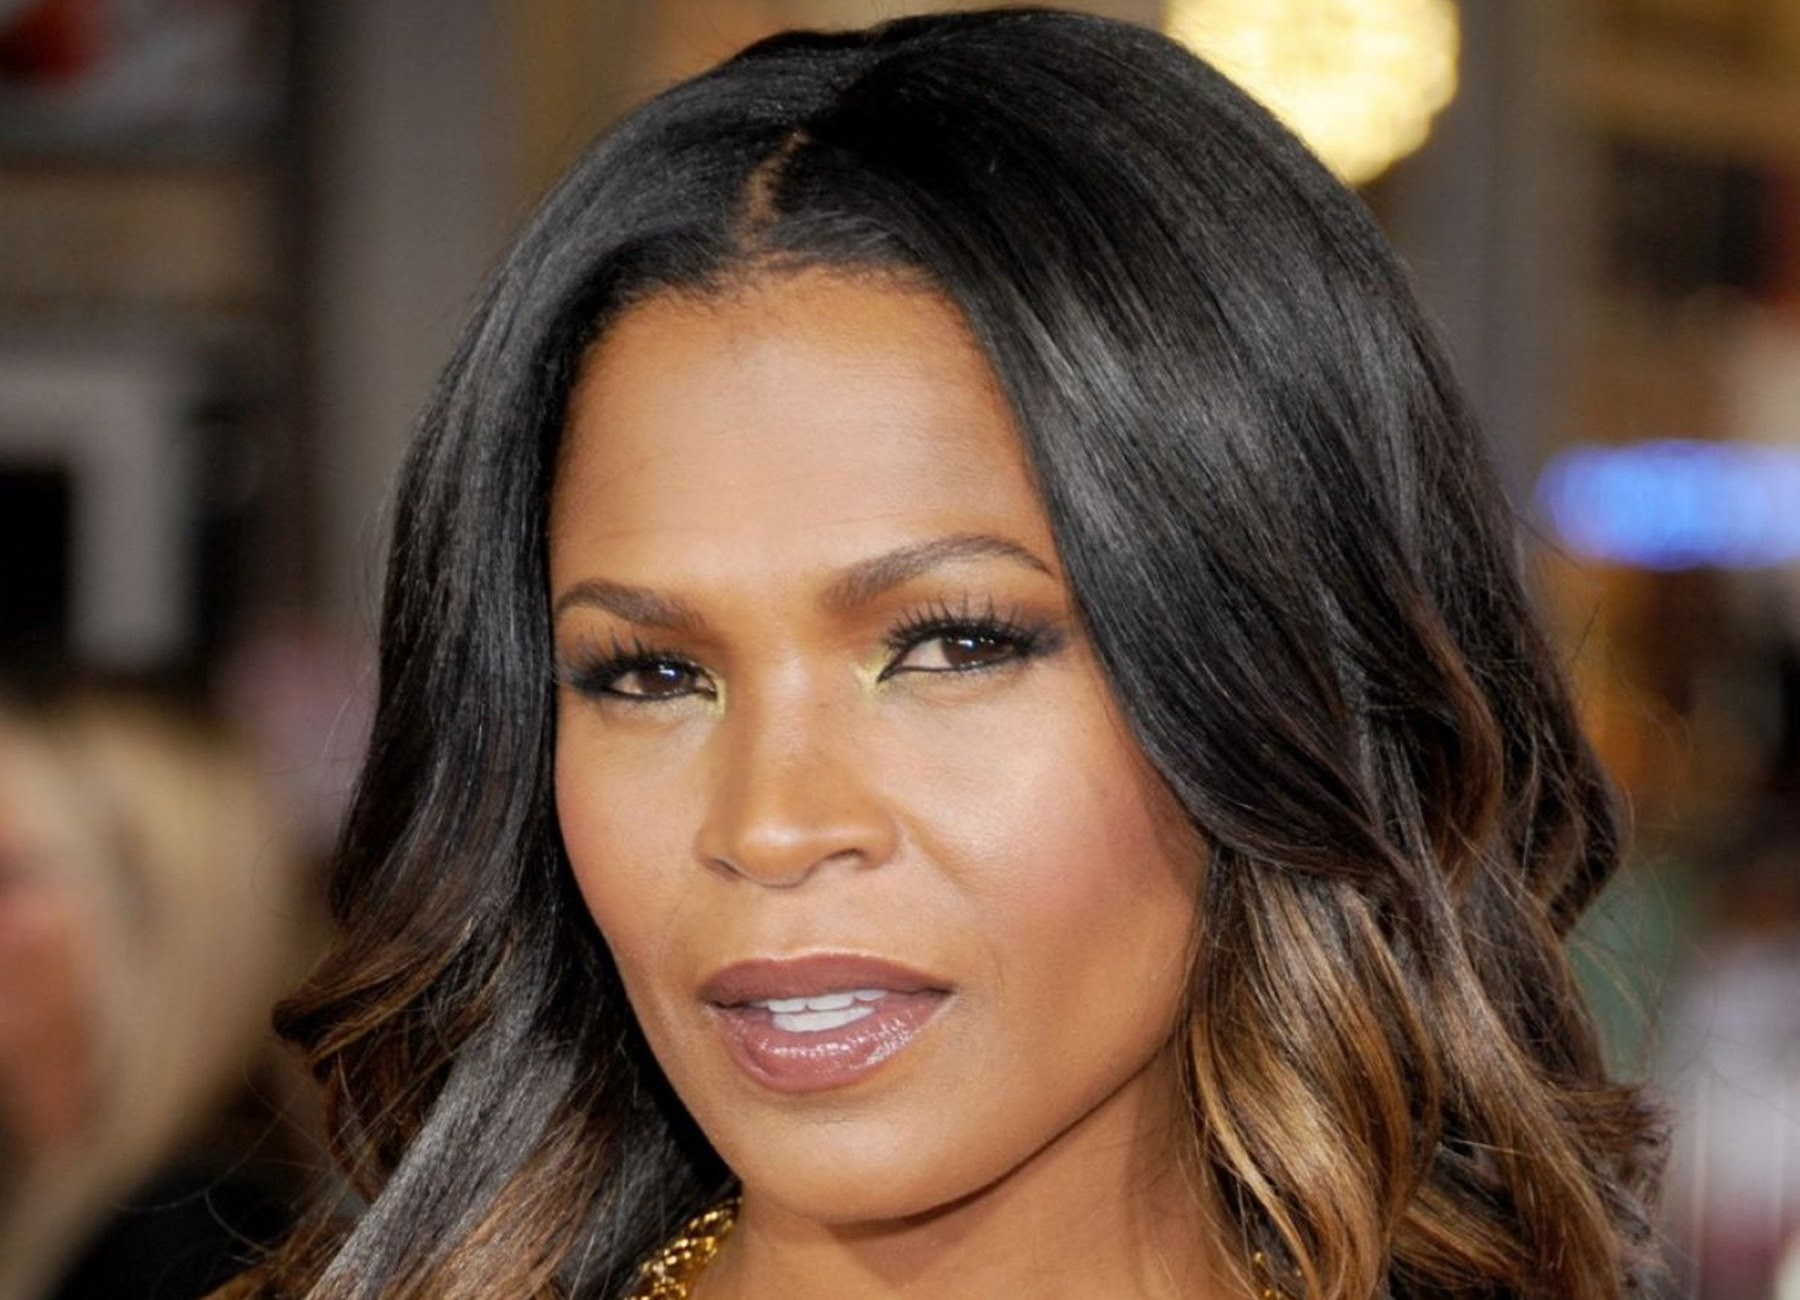 nia-long-has-a-classy-clapback-for-50-cent-who-disrespected-black-women